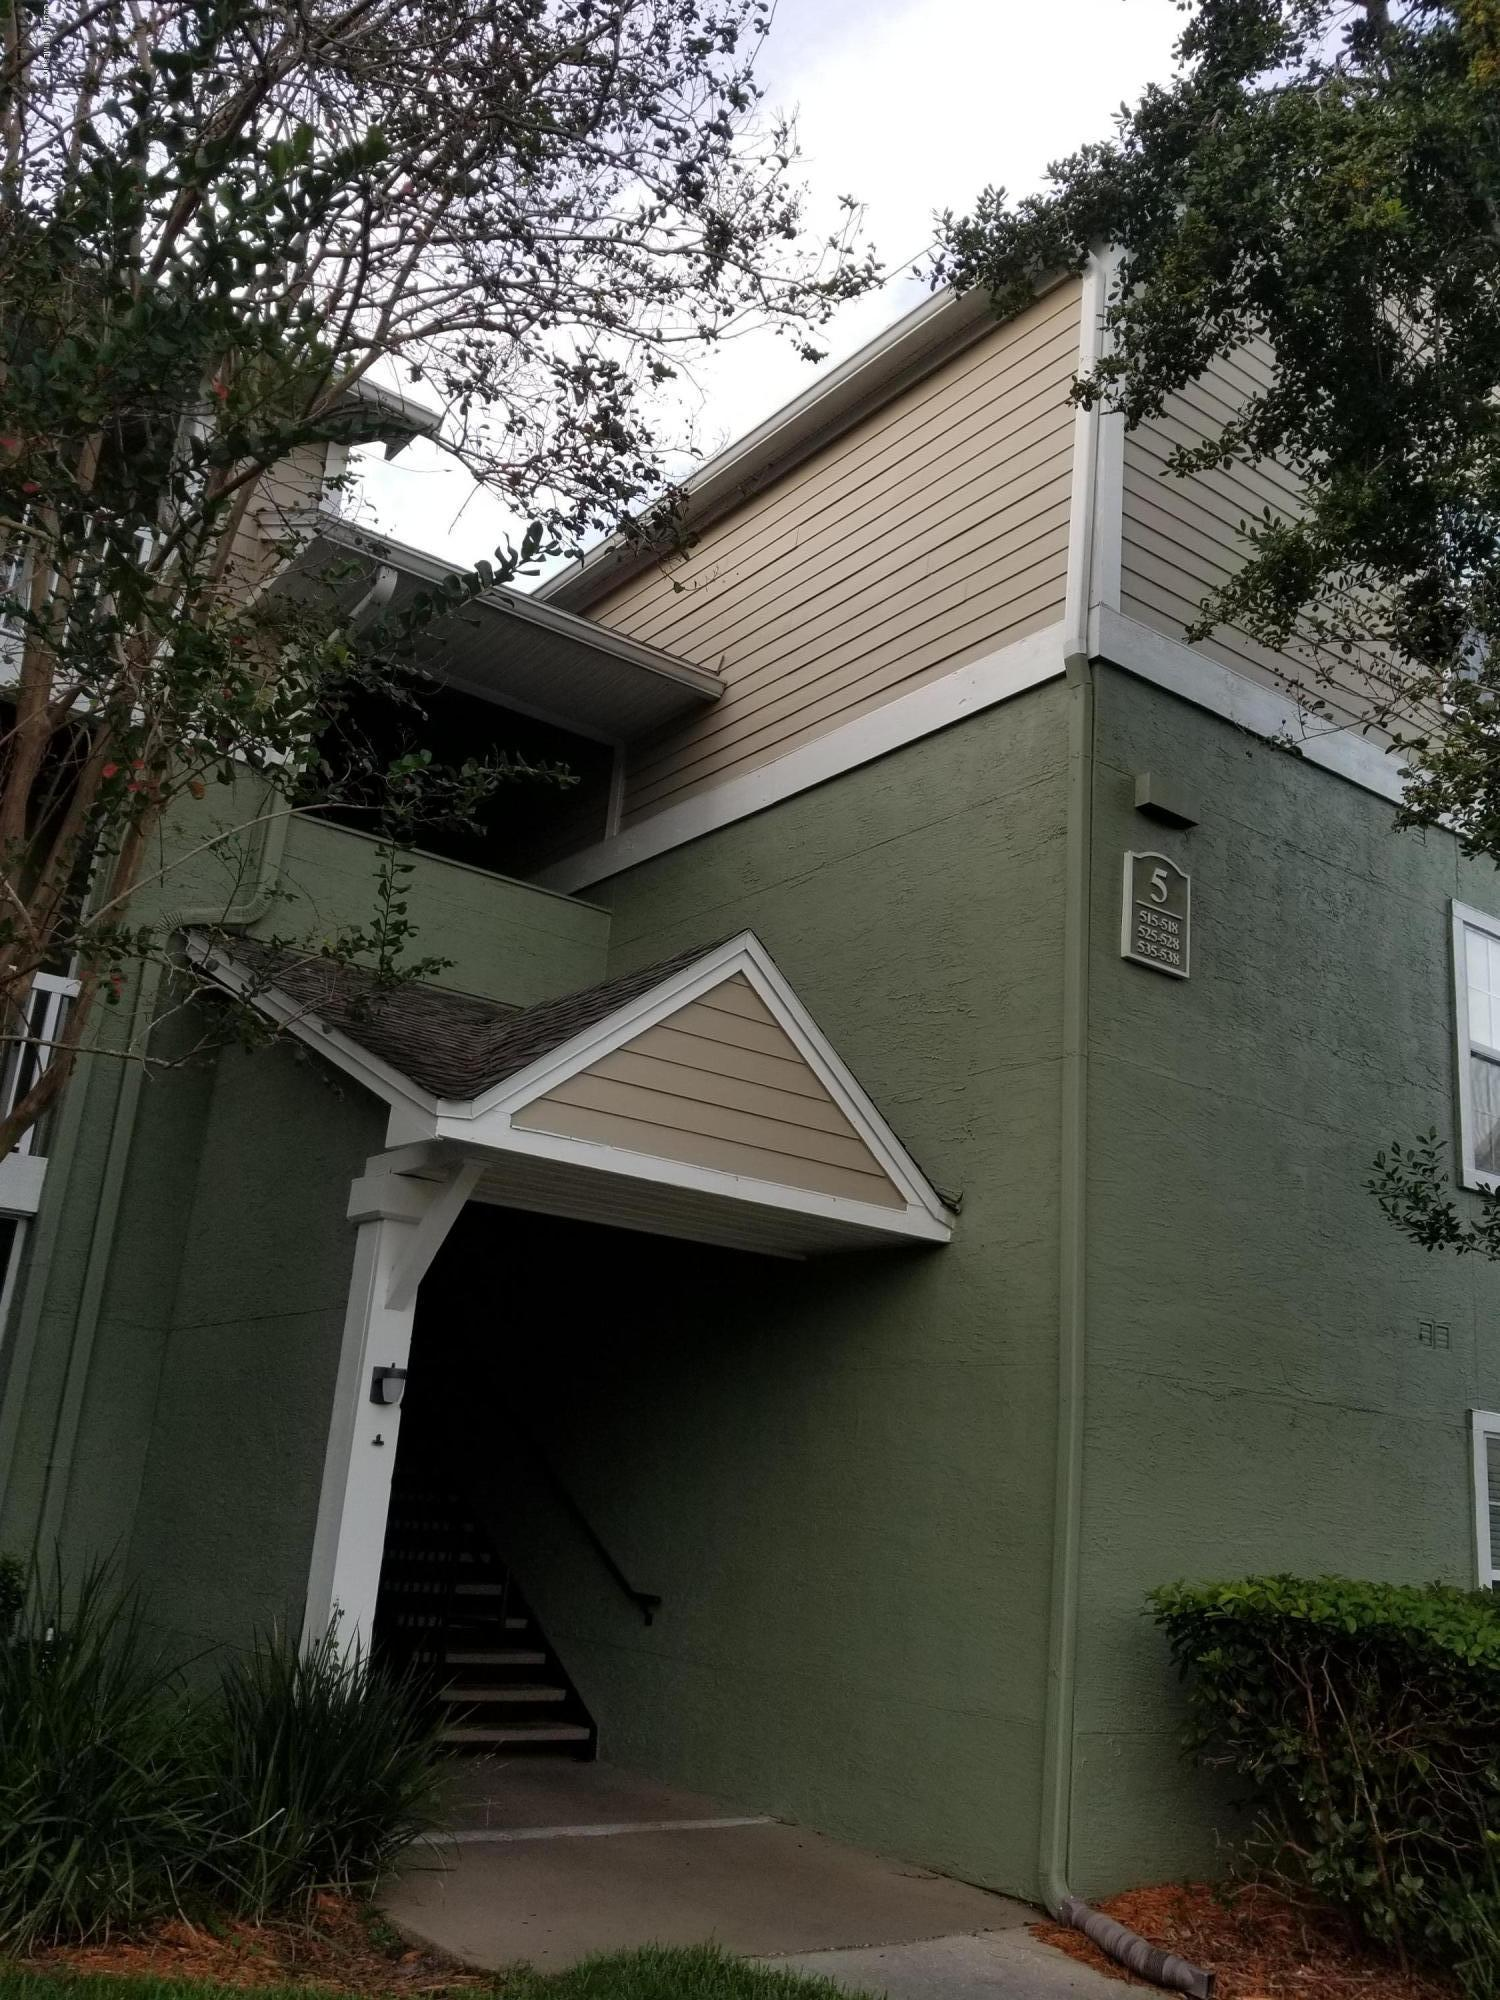 7701 TIMBERLIN PARK, JACKSONVILLE, FLORIDA 32256, 2 Bedrooms Bedrooms, ,2 BathroomsBathrooms,Residential - condos/townhomes,For sale,TIMBERLIN PARK,961952